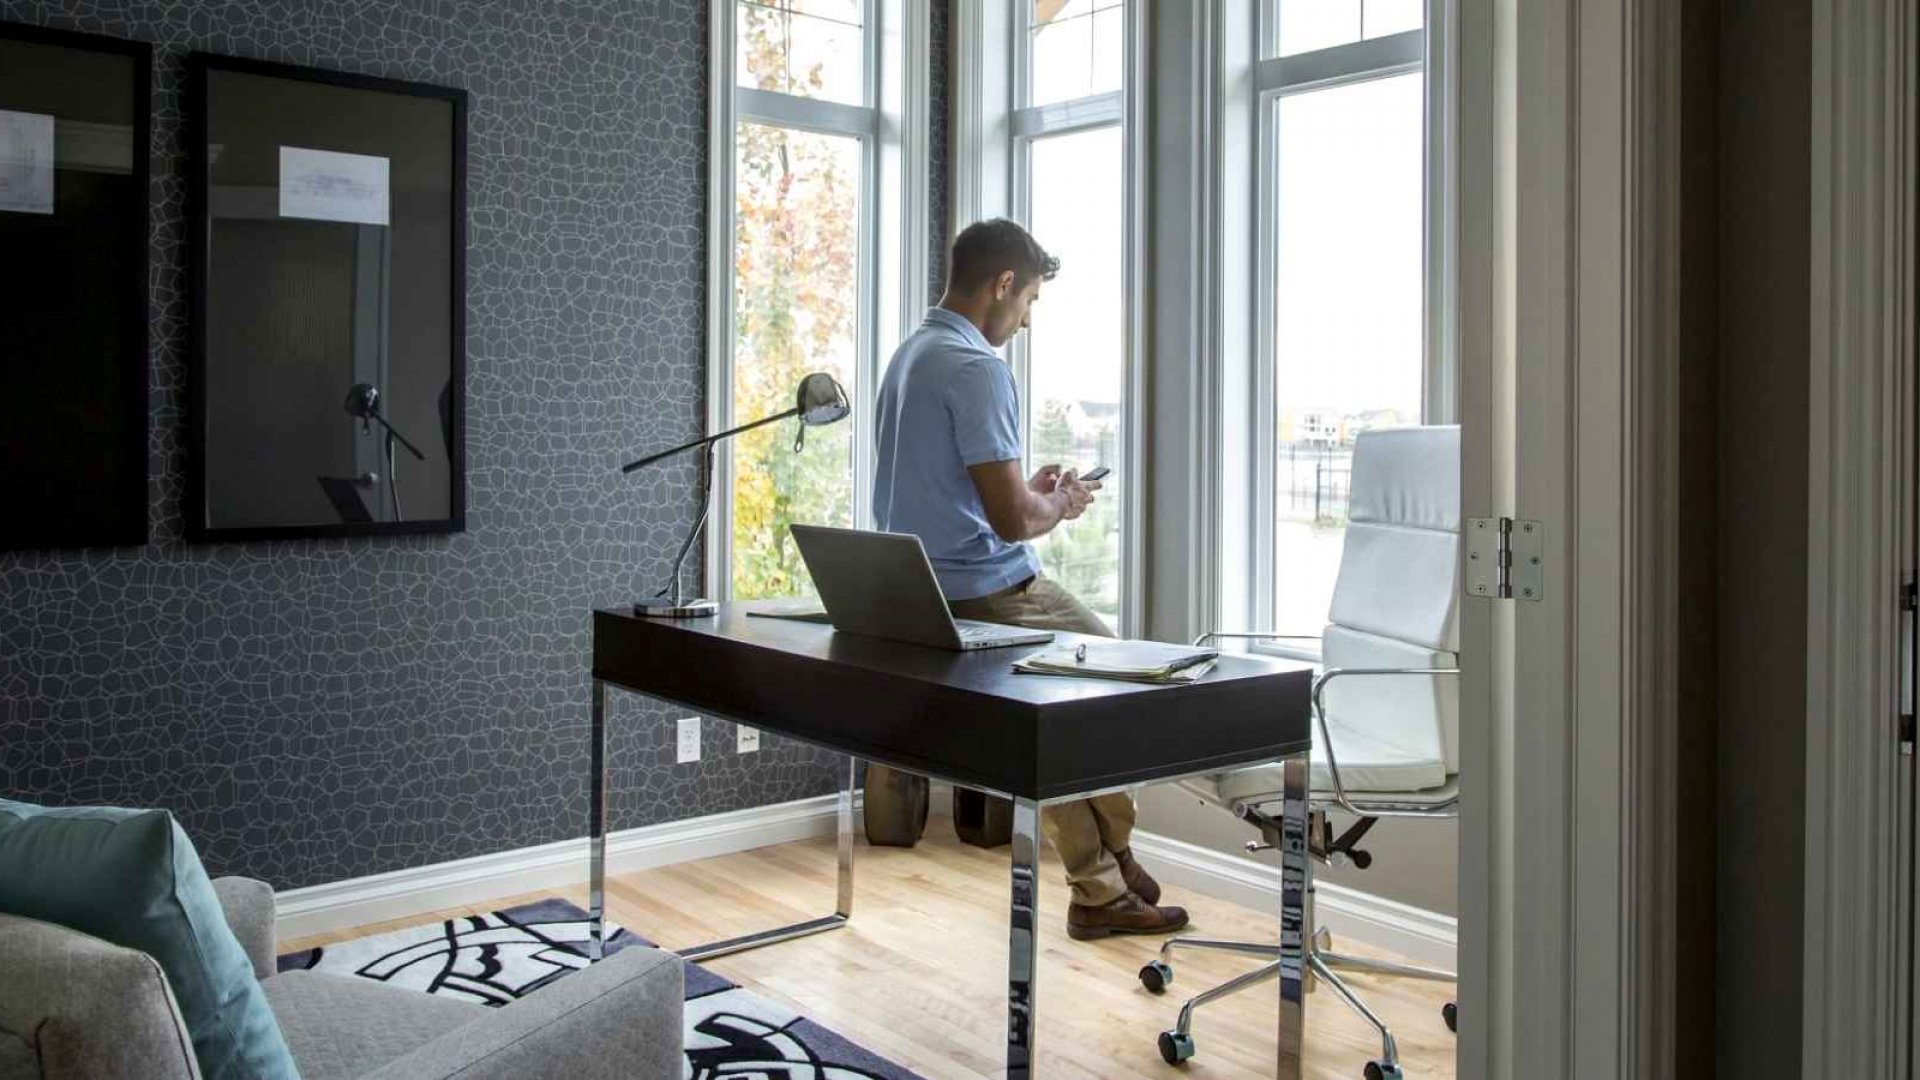 How Most Remote Workers End Up Wasting Time (and What to Do About It)